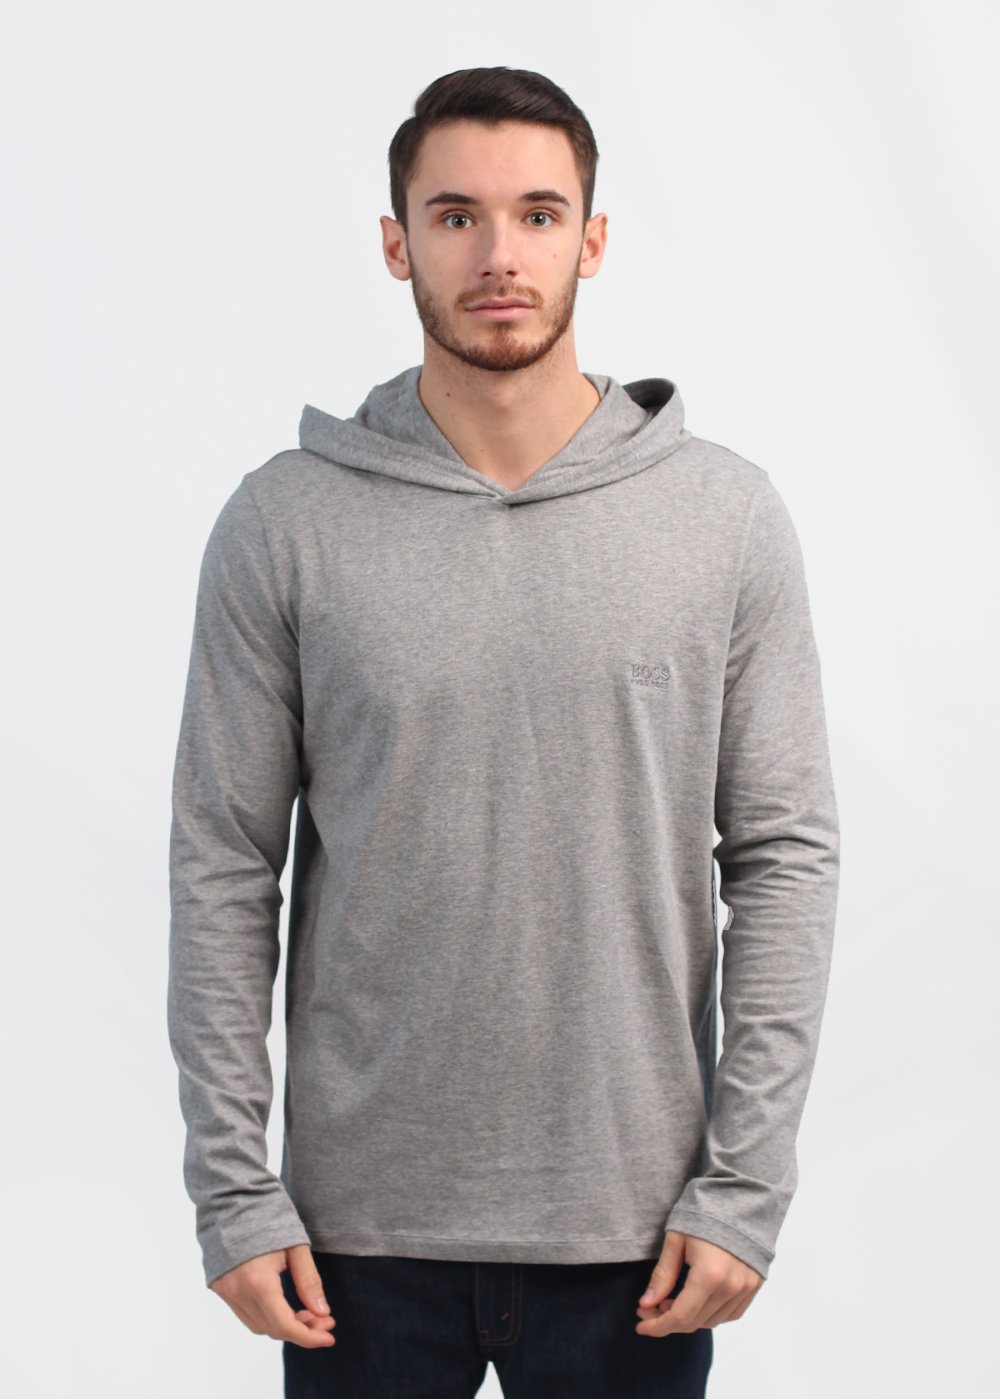 Boss Black Hooded Long Sleeve Shirt - Medium Grey